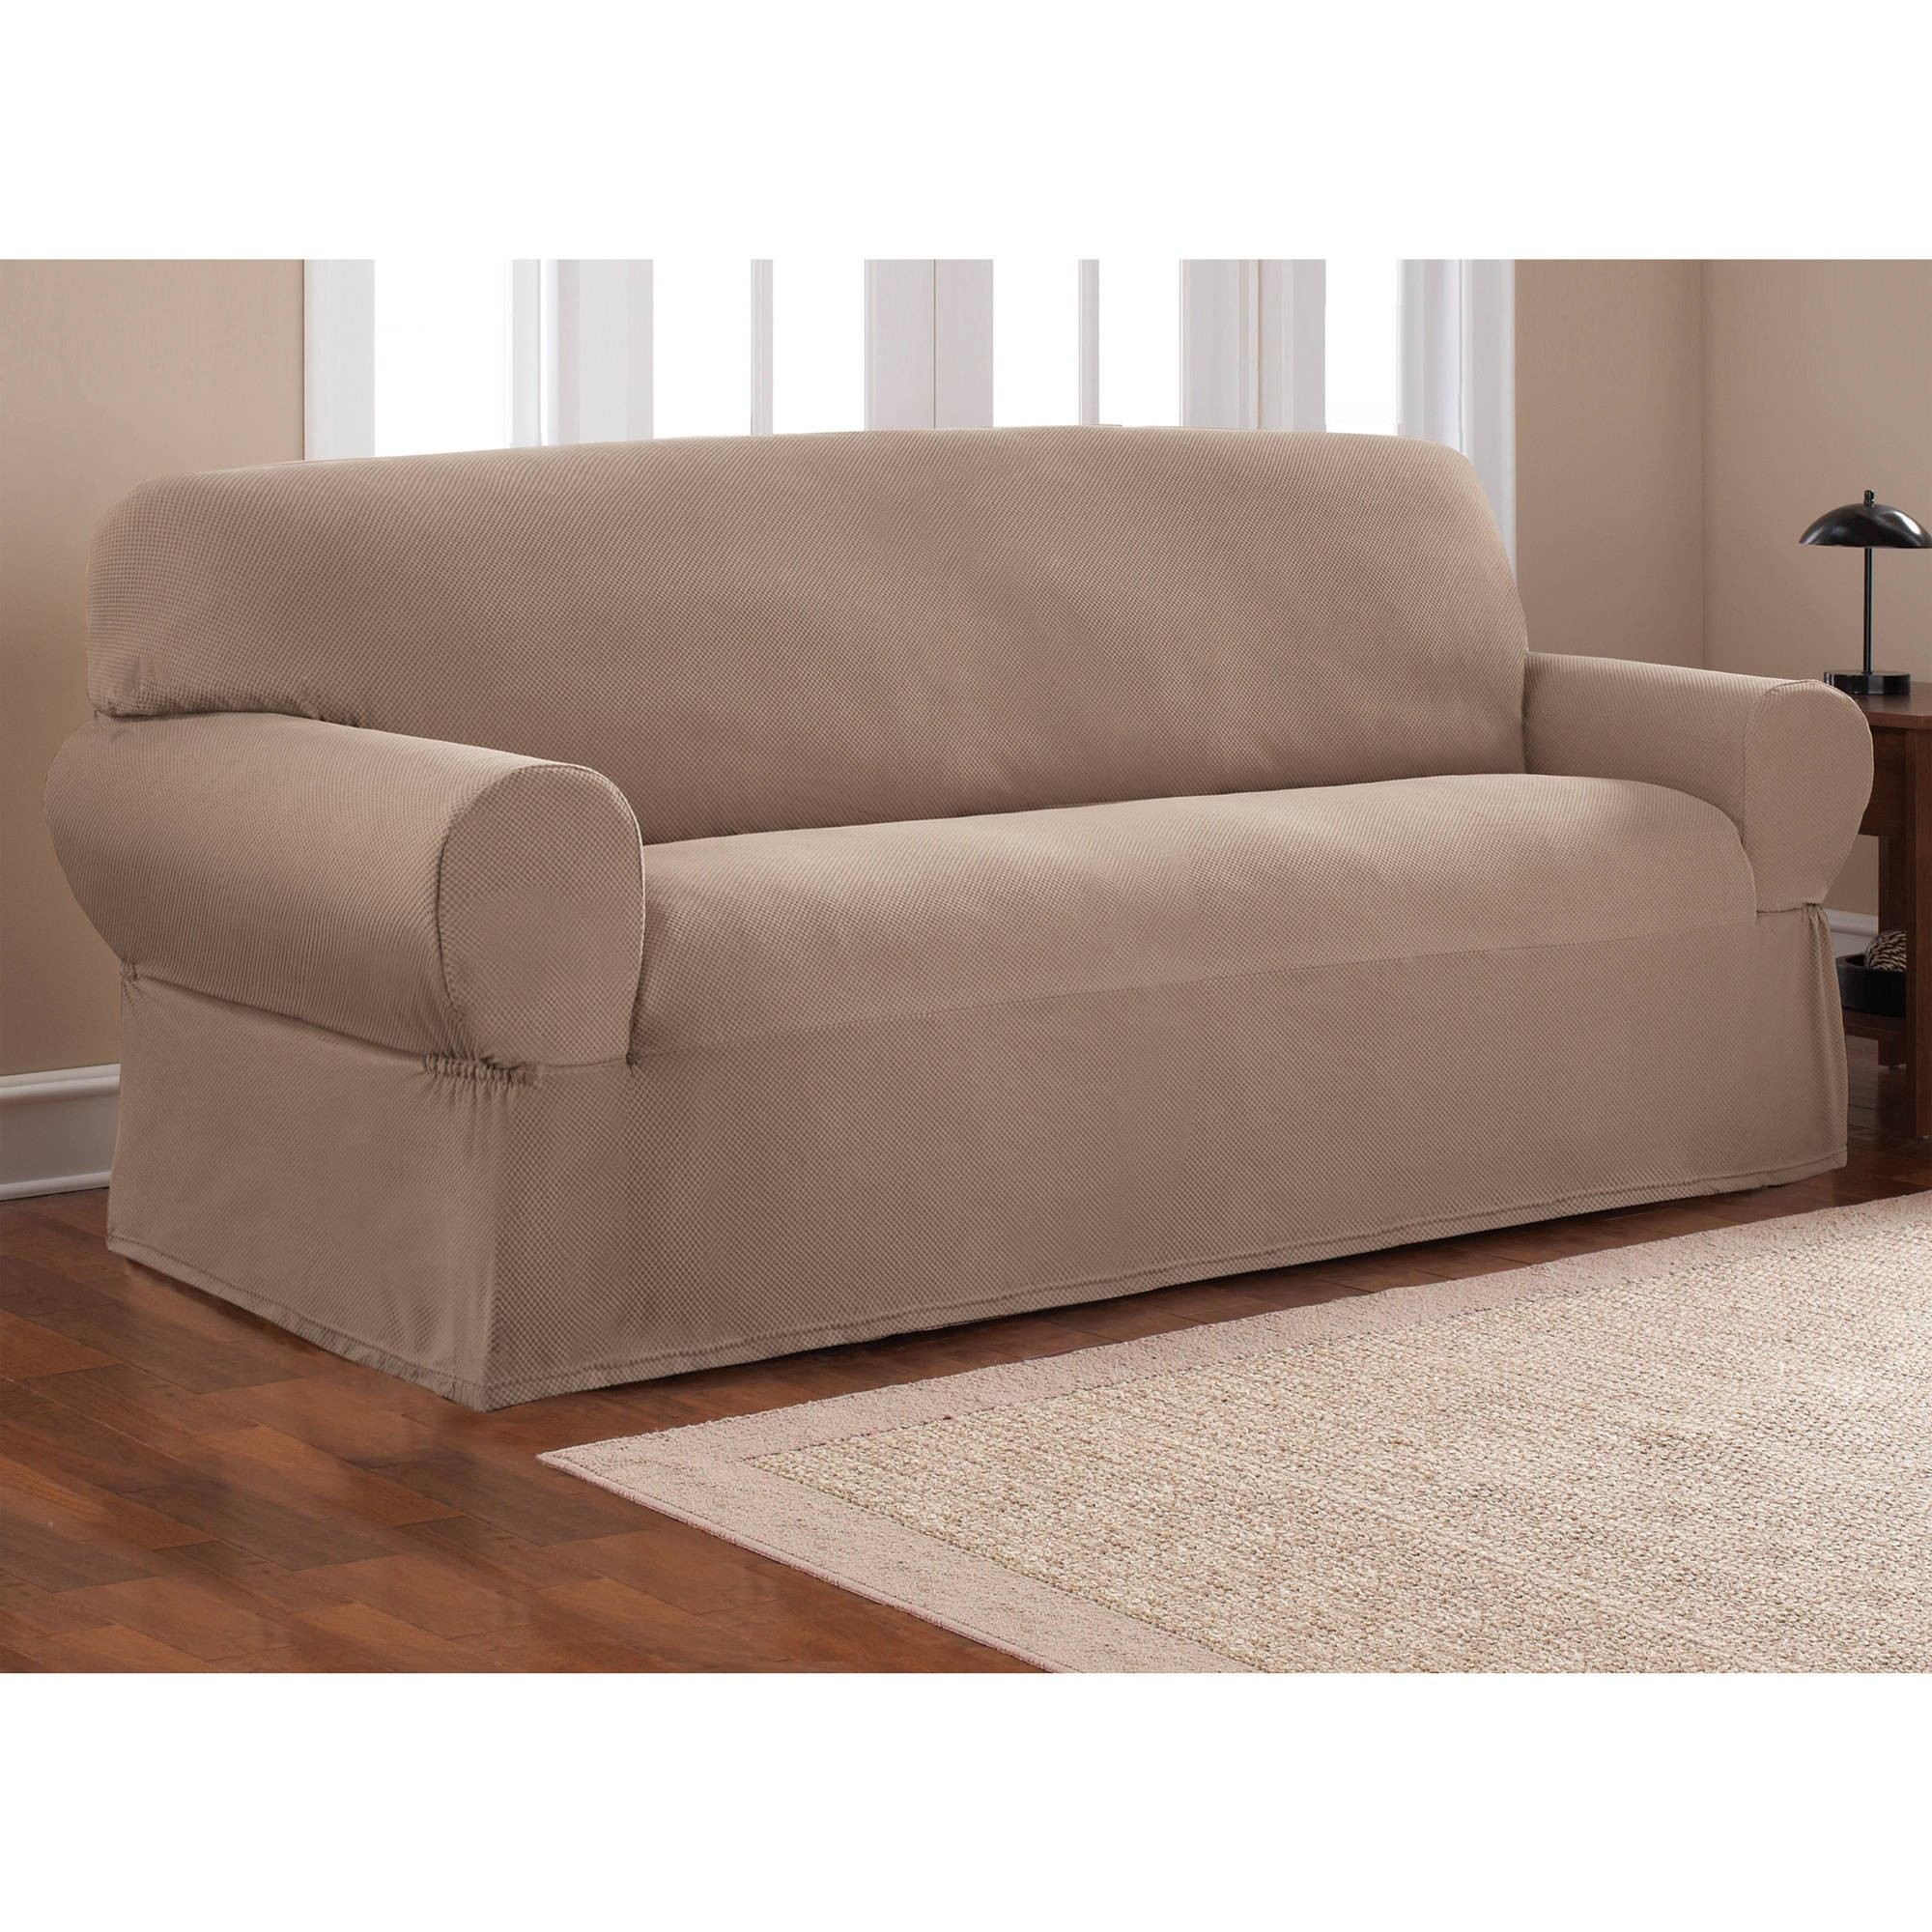 Stretch sofa Slipcover Modern Mainstays 1 Piece Stretch Fabric sofa Slipcover Walmart Concept